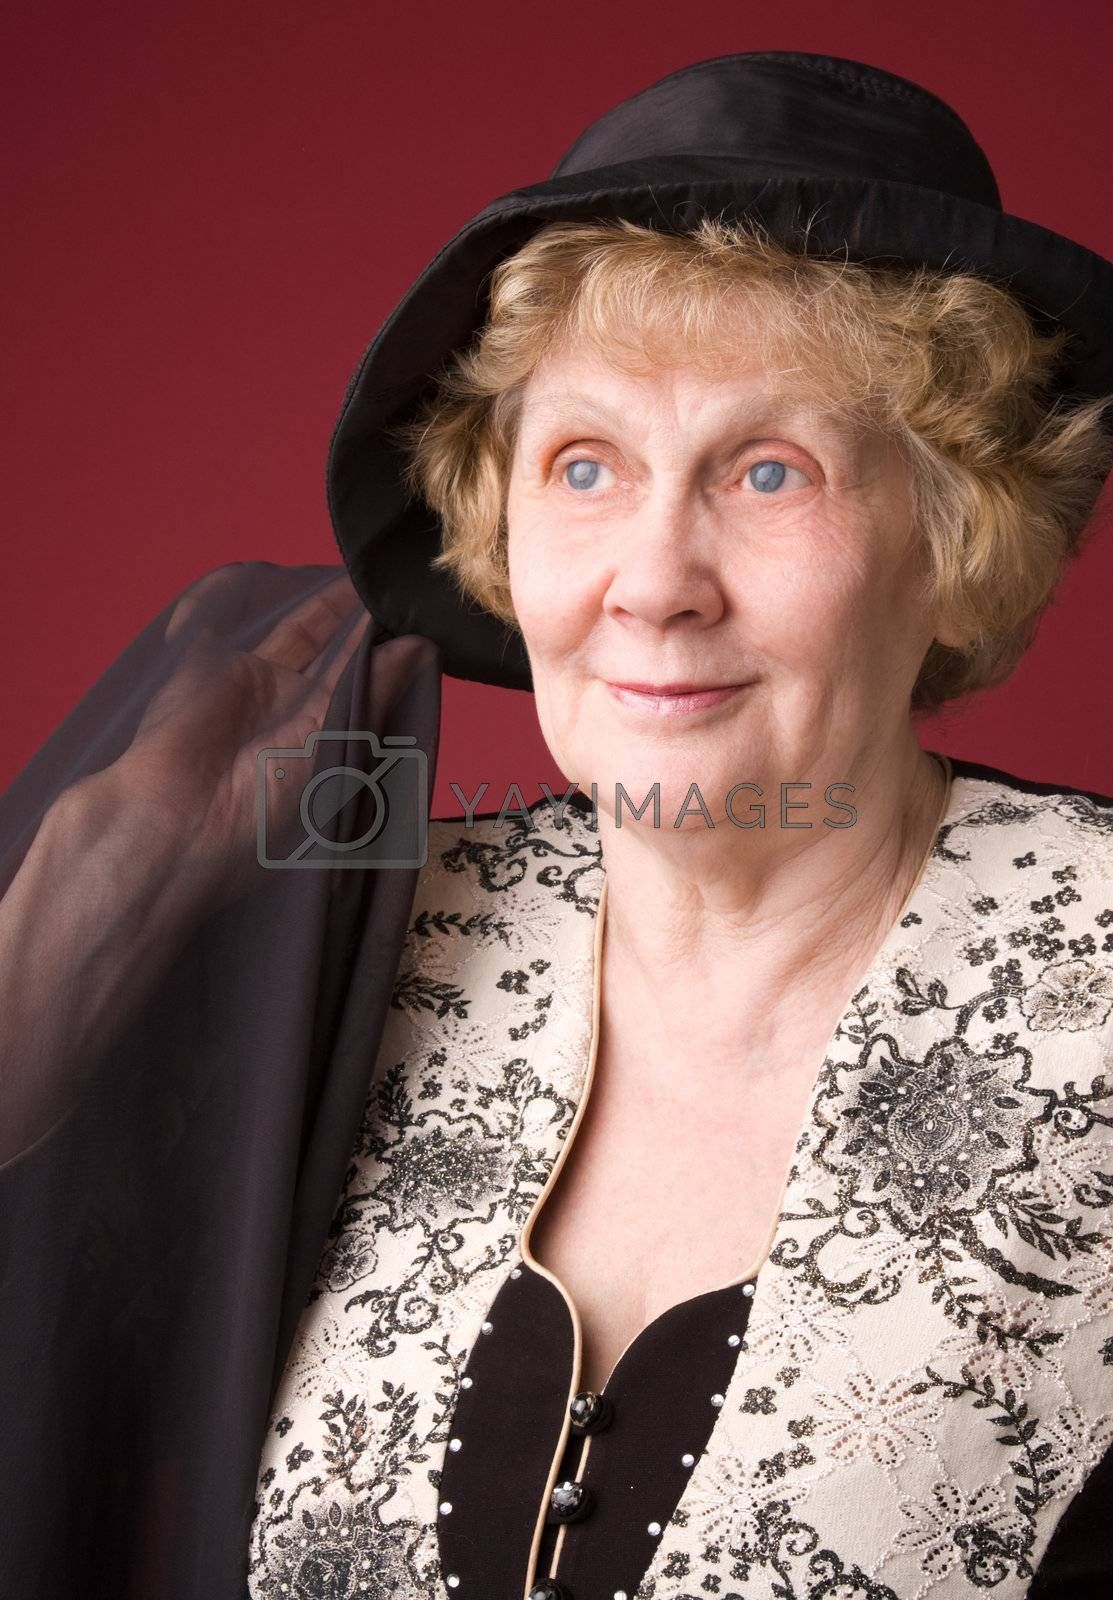 The cheerful elderly woman in hat on a red background.